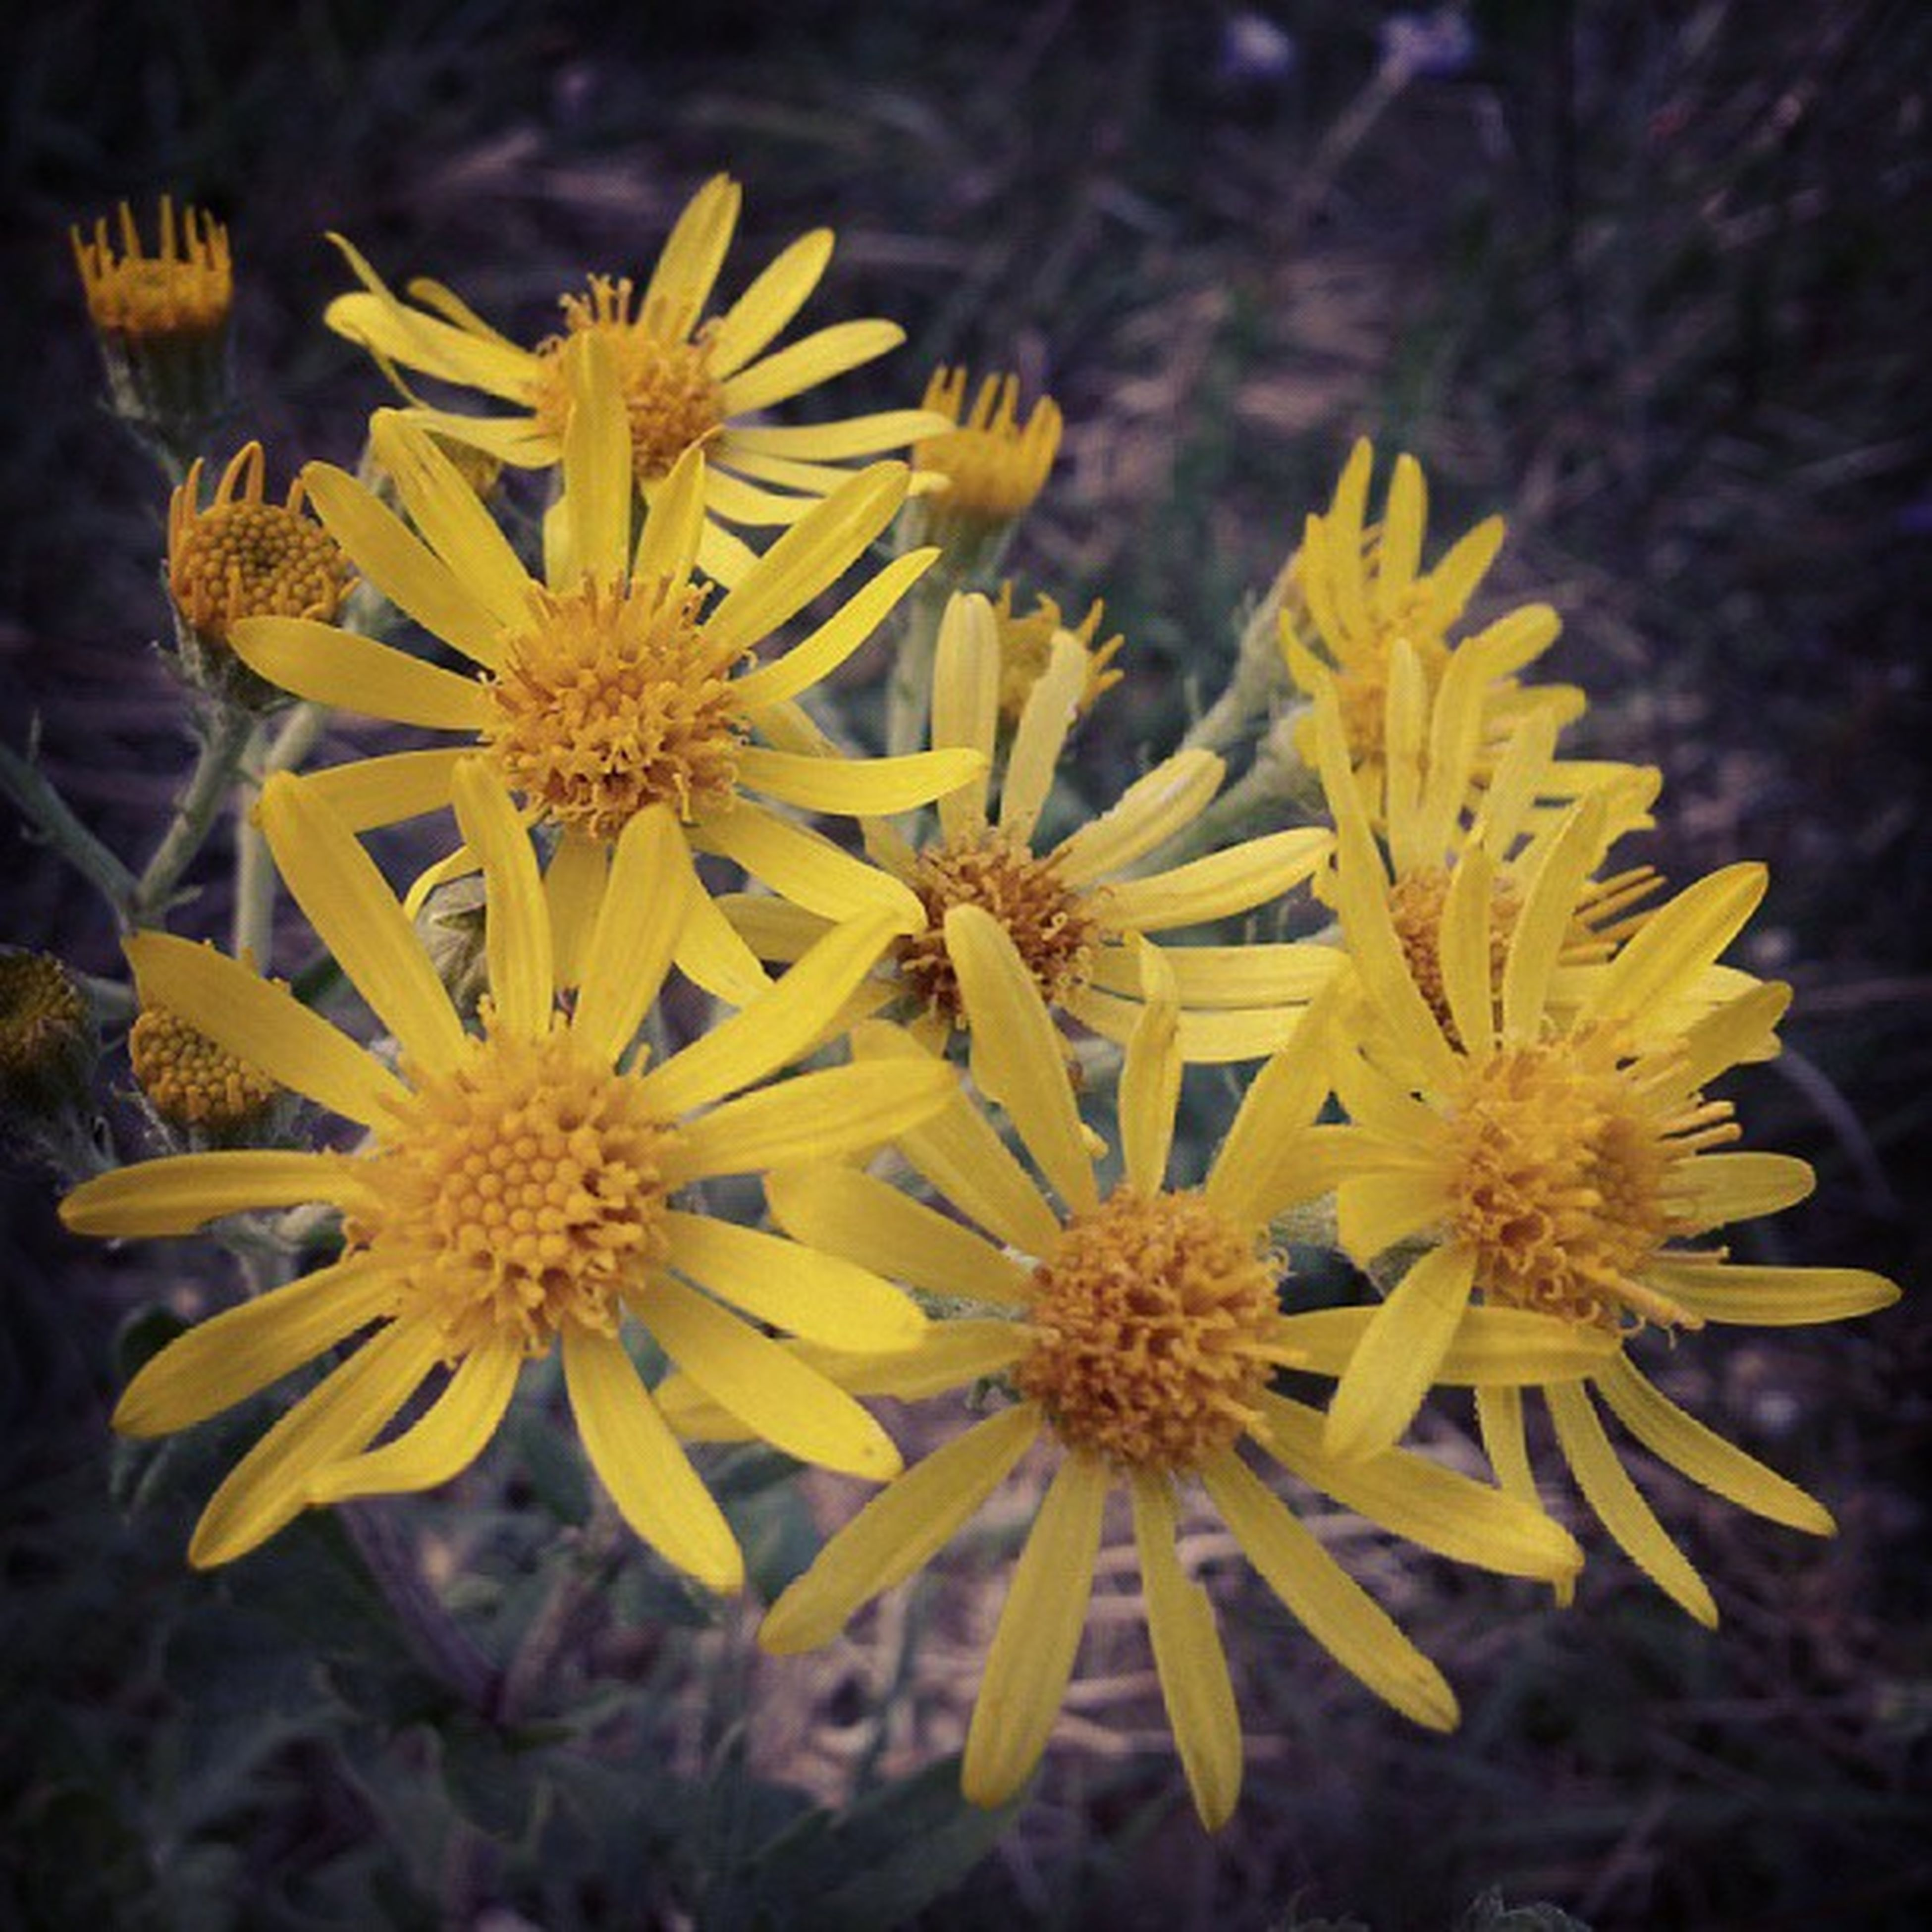 flower, yellow, petal, freshness, fragility, flower head, growth, beauty in nature, focus on foreground, close-up, nature, blooming, plant, pollen, in bloom, selective focus, day, outdoors, no people, high angle view